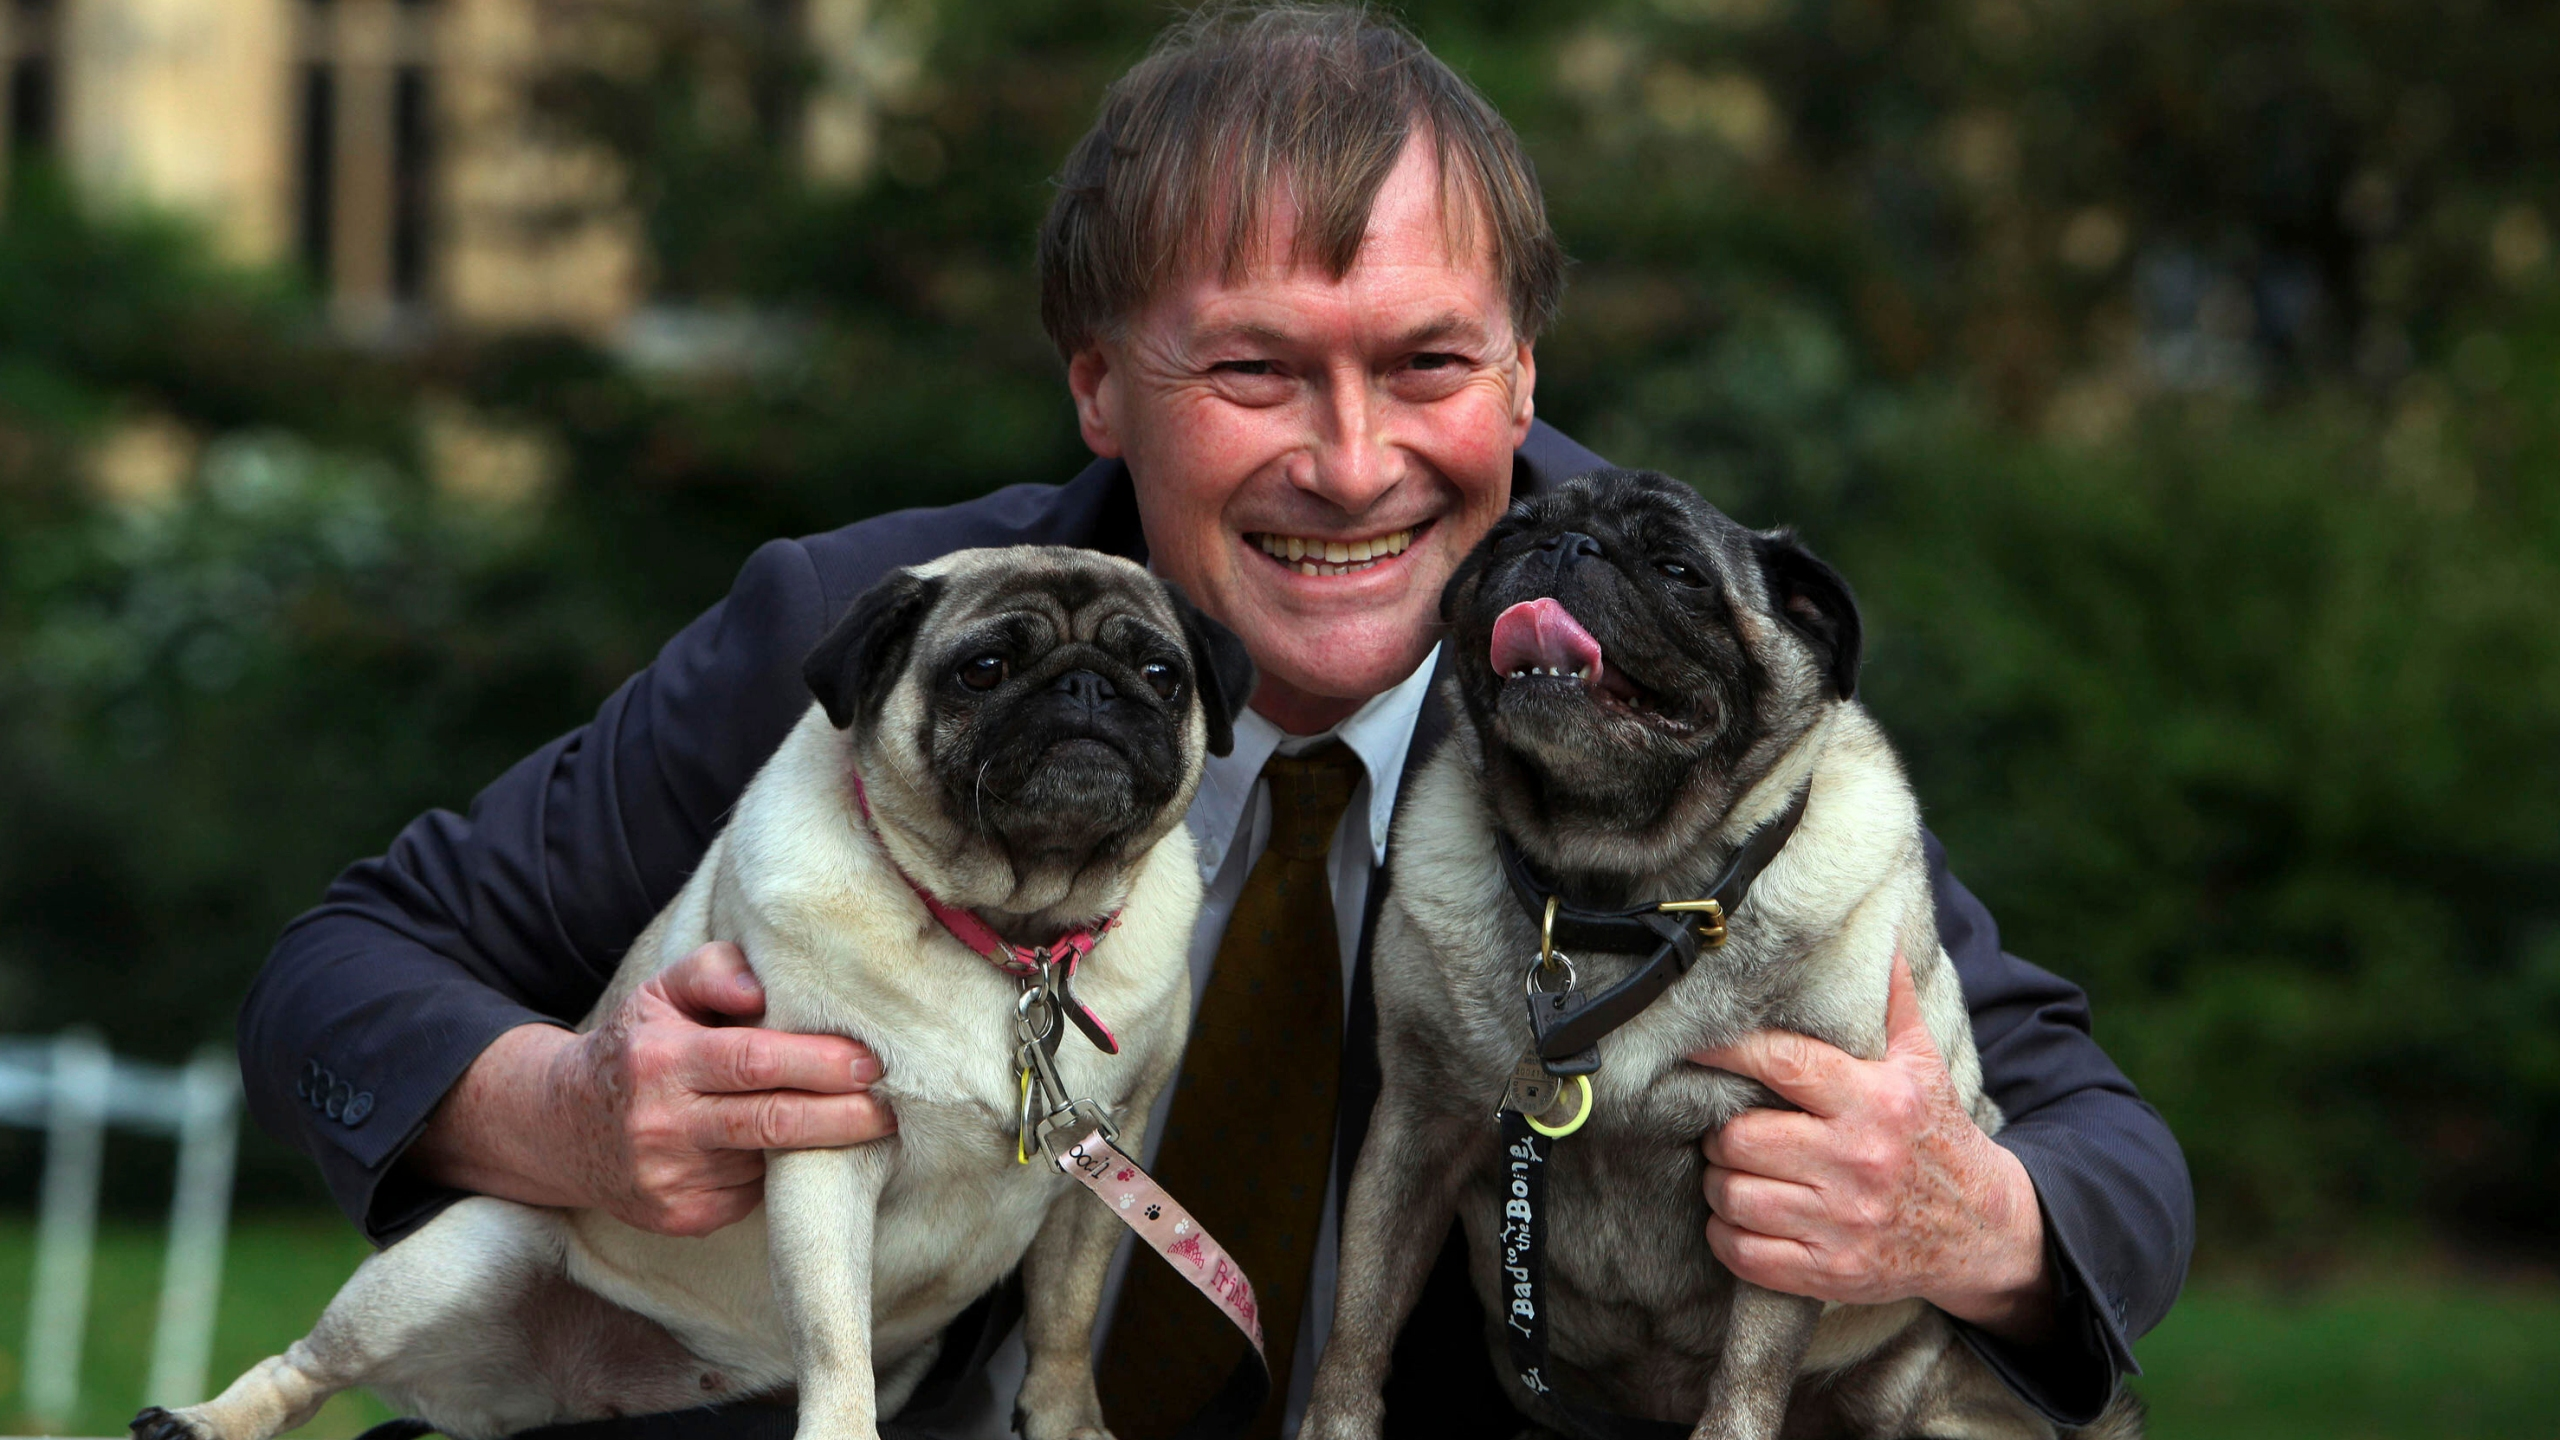 Conservative MP David Amess with his pugs, Lily and Boat at the Westminster Dog of the Year competition at Victoria Tower Gardens in London on Oct. 10, 2013. (Geoff Caddick/PA via AP)